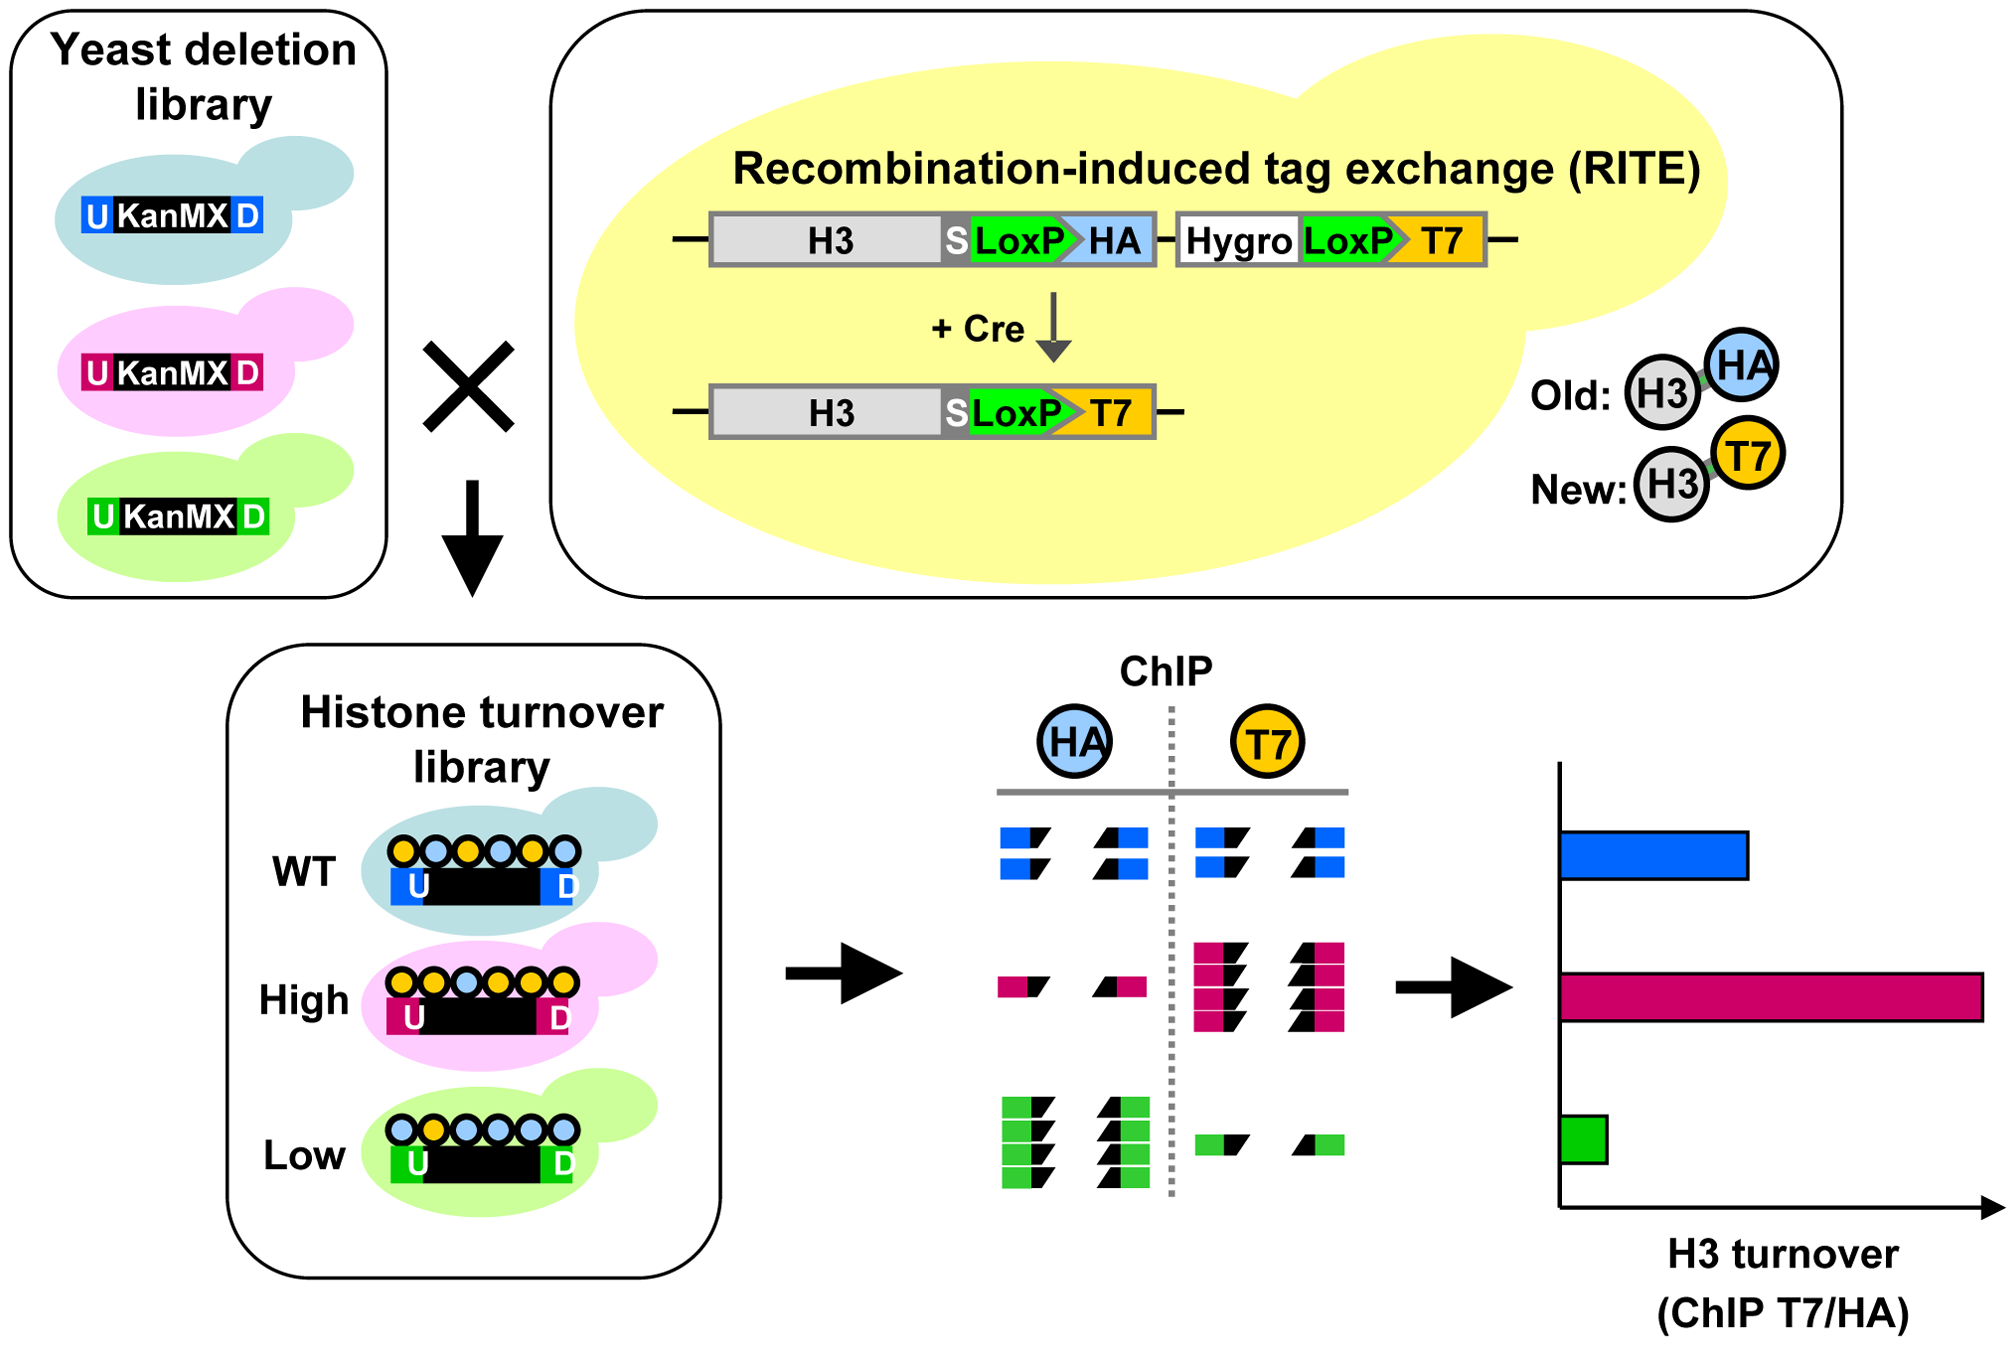 Combining Epi-ID with RITE to screen for histone turnover mutants.